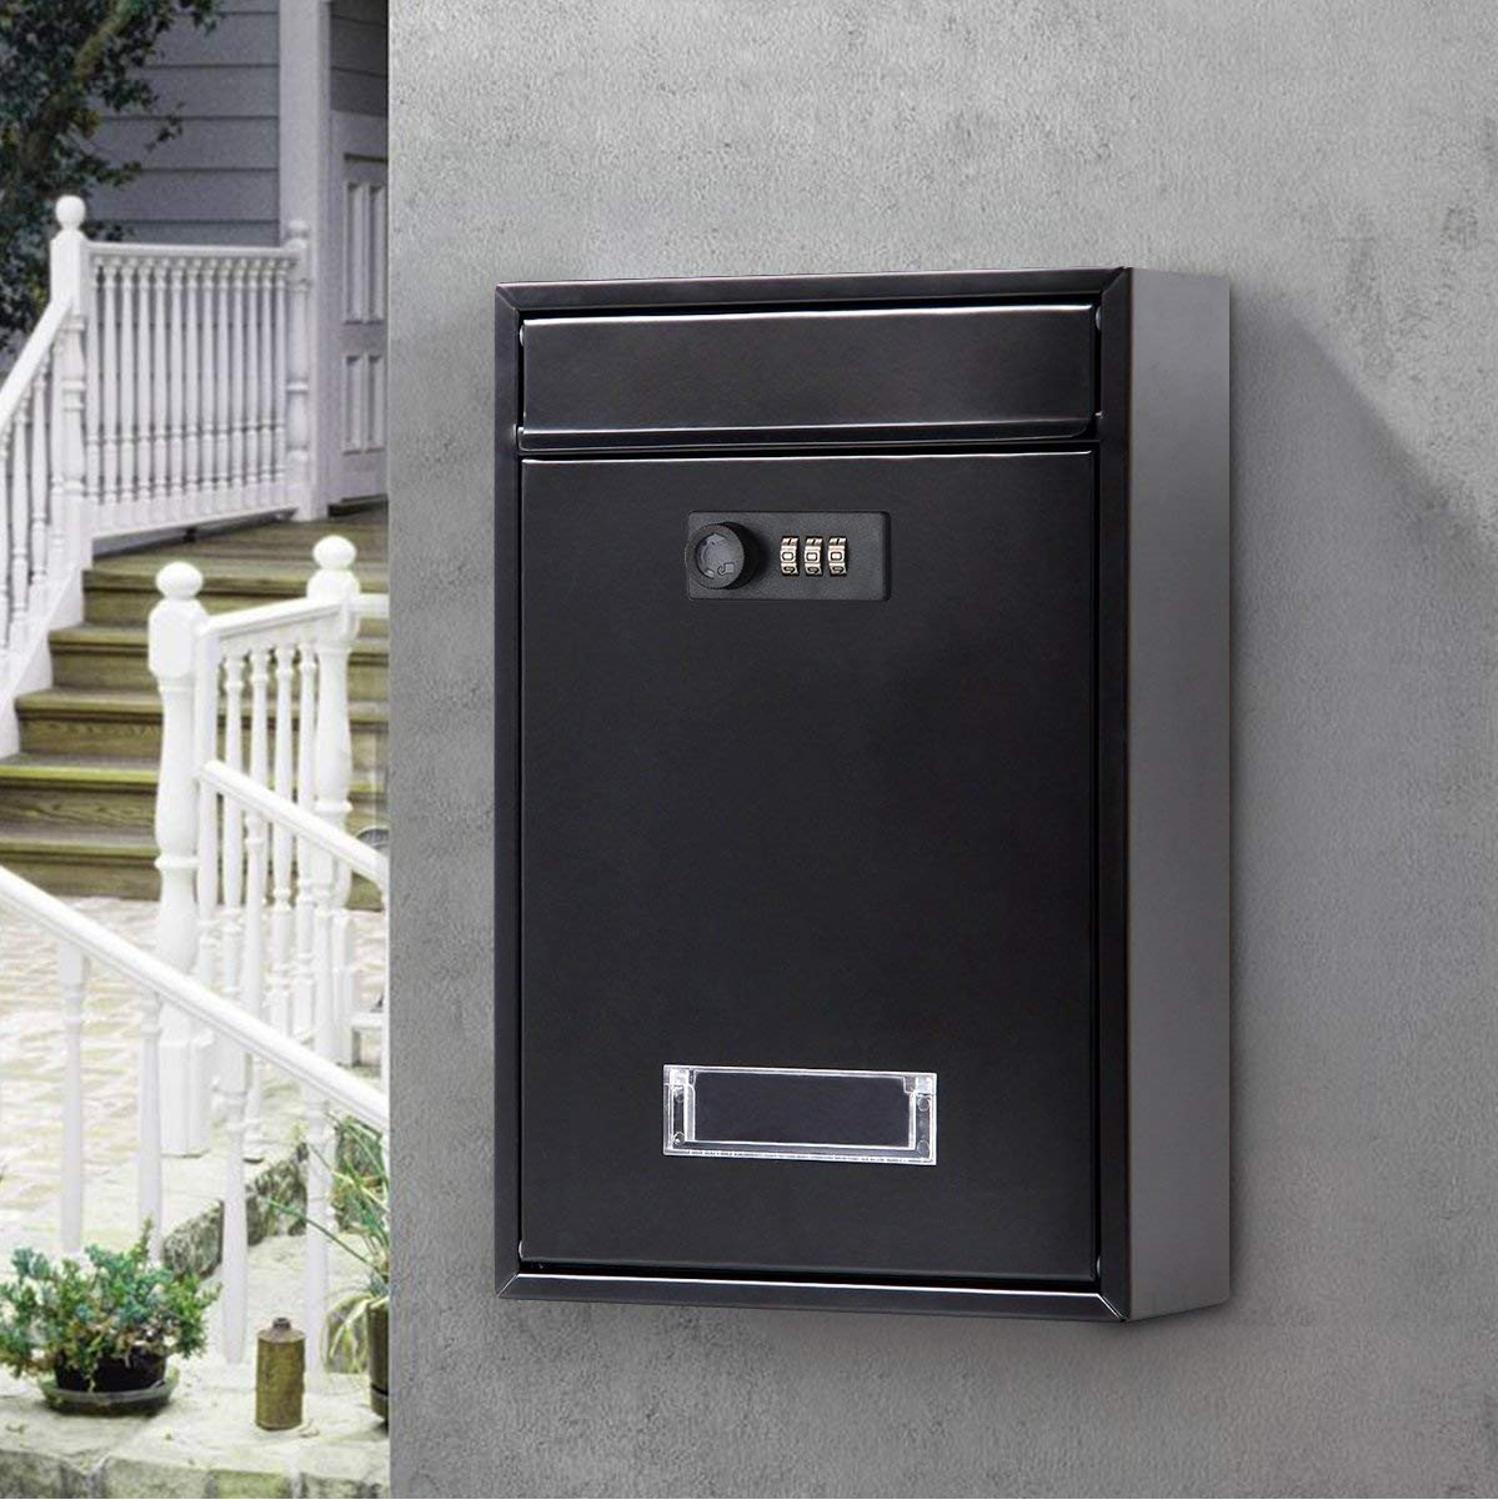 32X21X8.5CM Vintage Wall Mounted Mailbox With Combination Lock Metal Coded Lock Letterbox Post Newspaper Box F5062-0